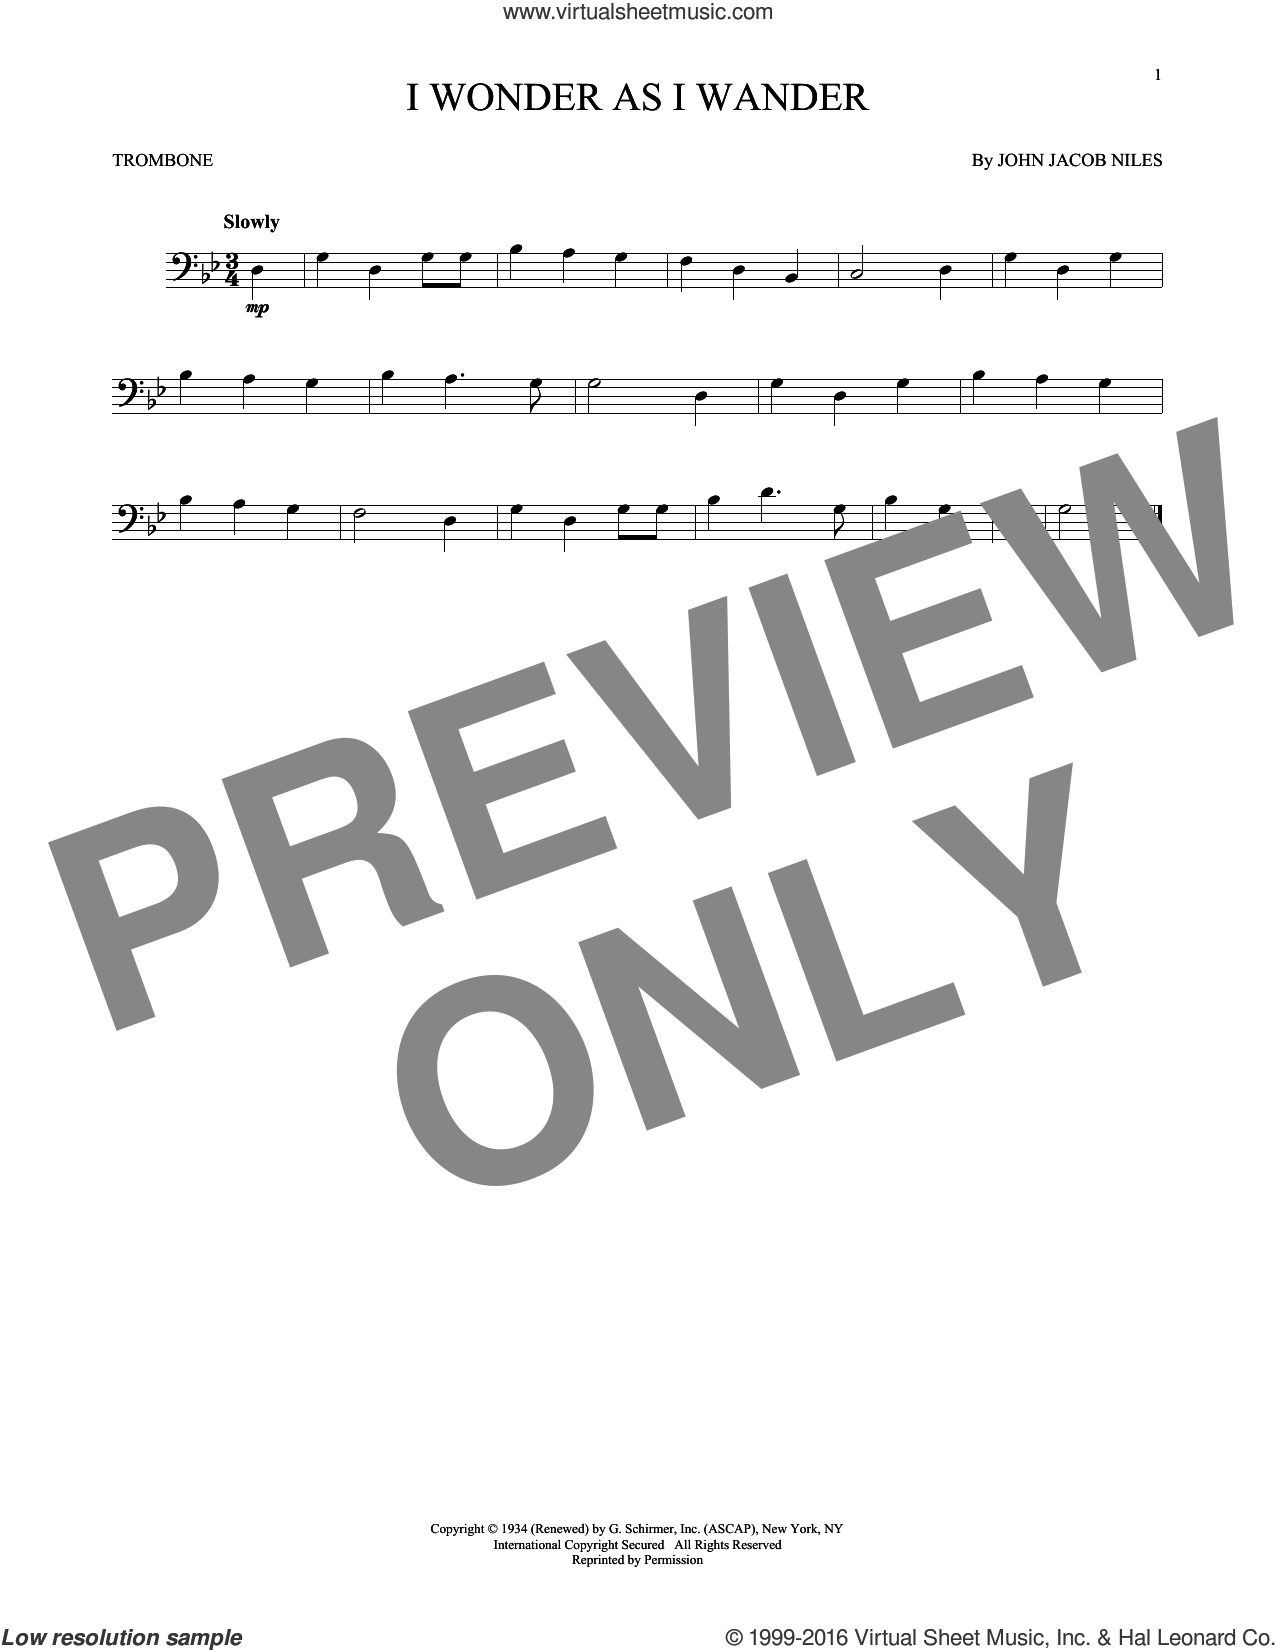 I Wonder As I Wander sheet music for trombone solo by John Jacob Niles. Score Image Preview.